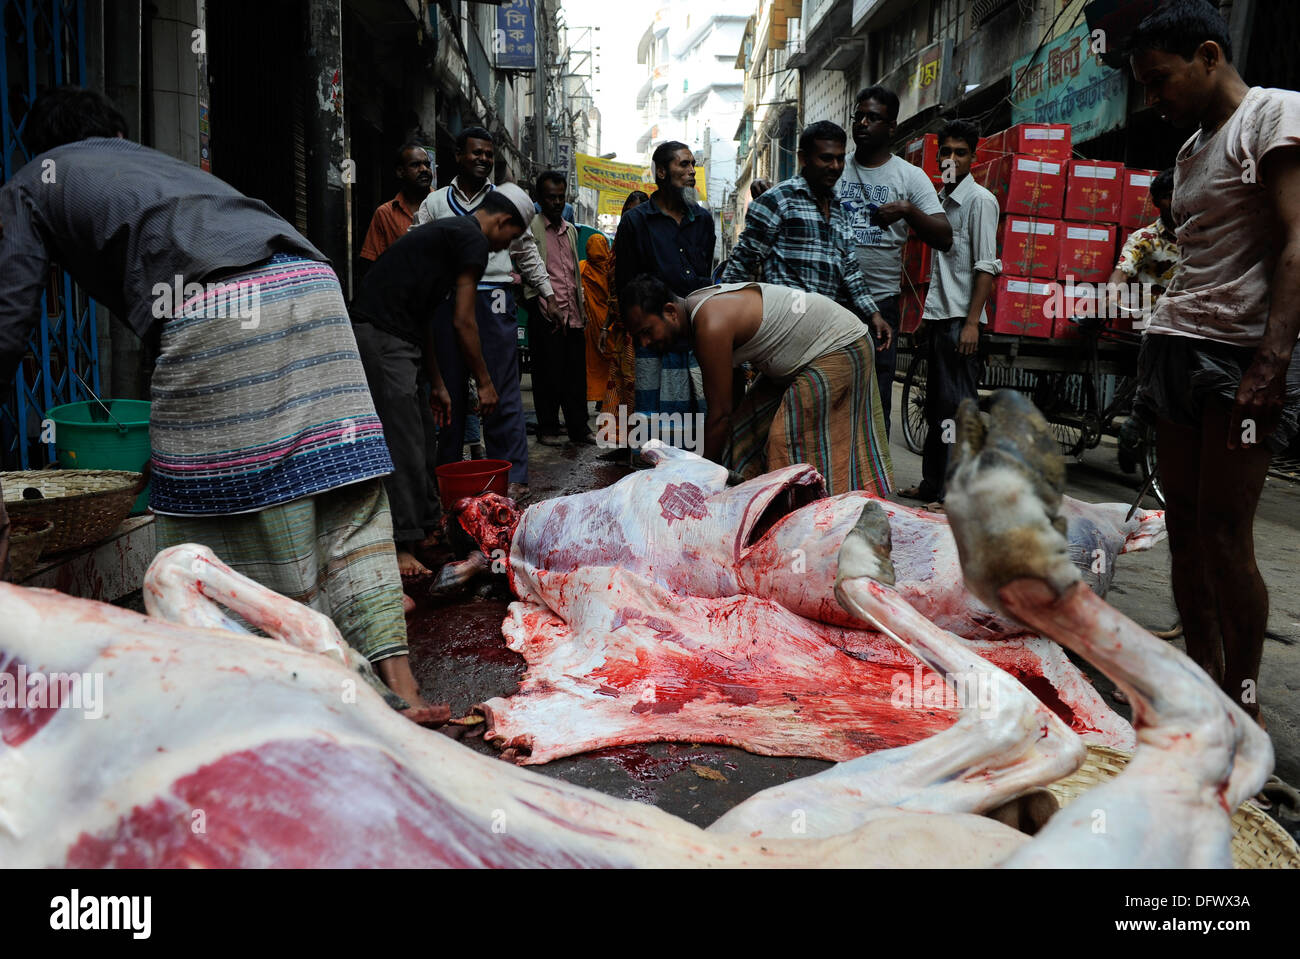 BANGLADESH Dhaka, Islamic Festival of Sacrifice Eid al-Adha, muslims slaughter animals on the road and distribute the meat - Stock Image